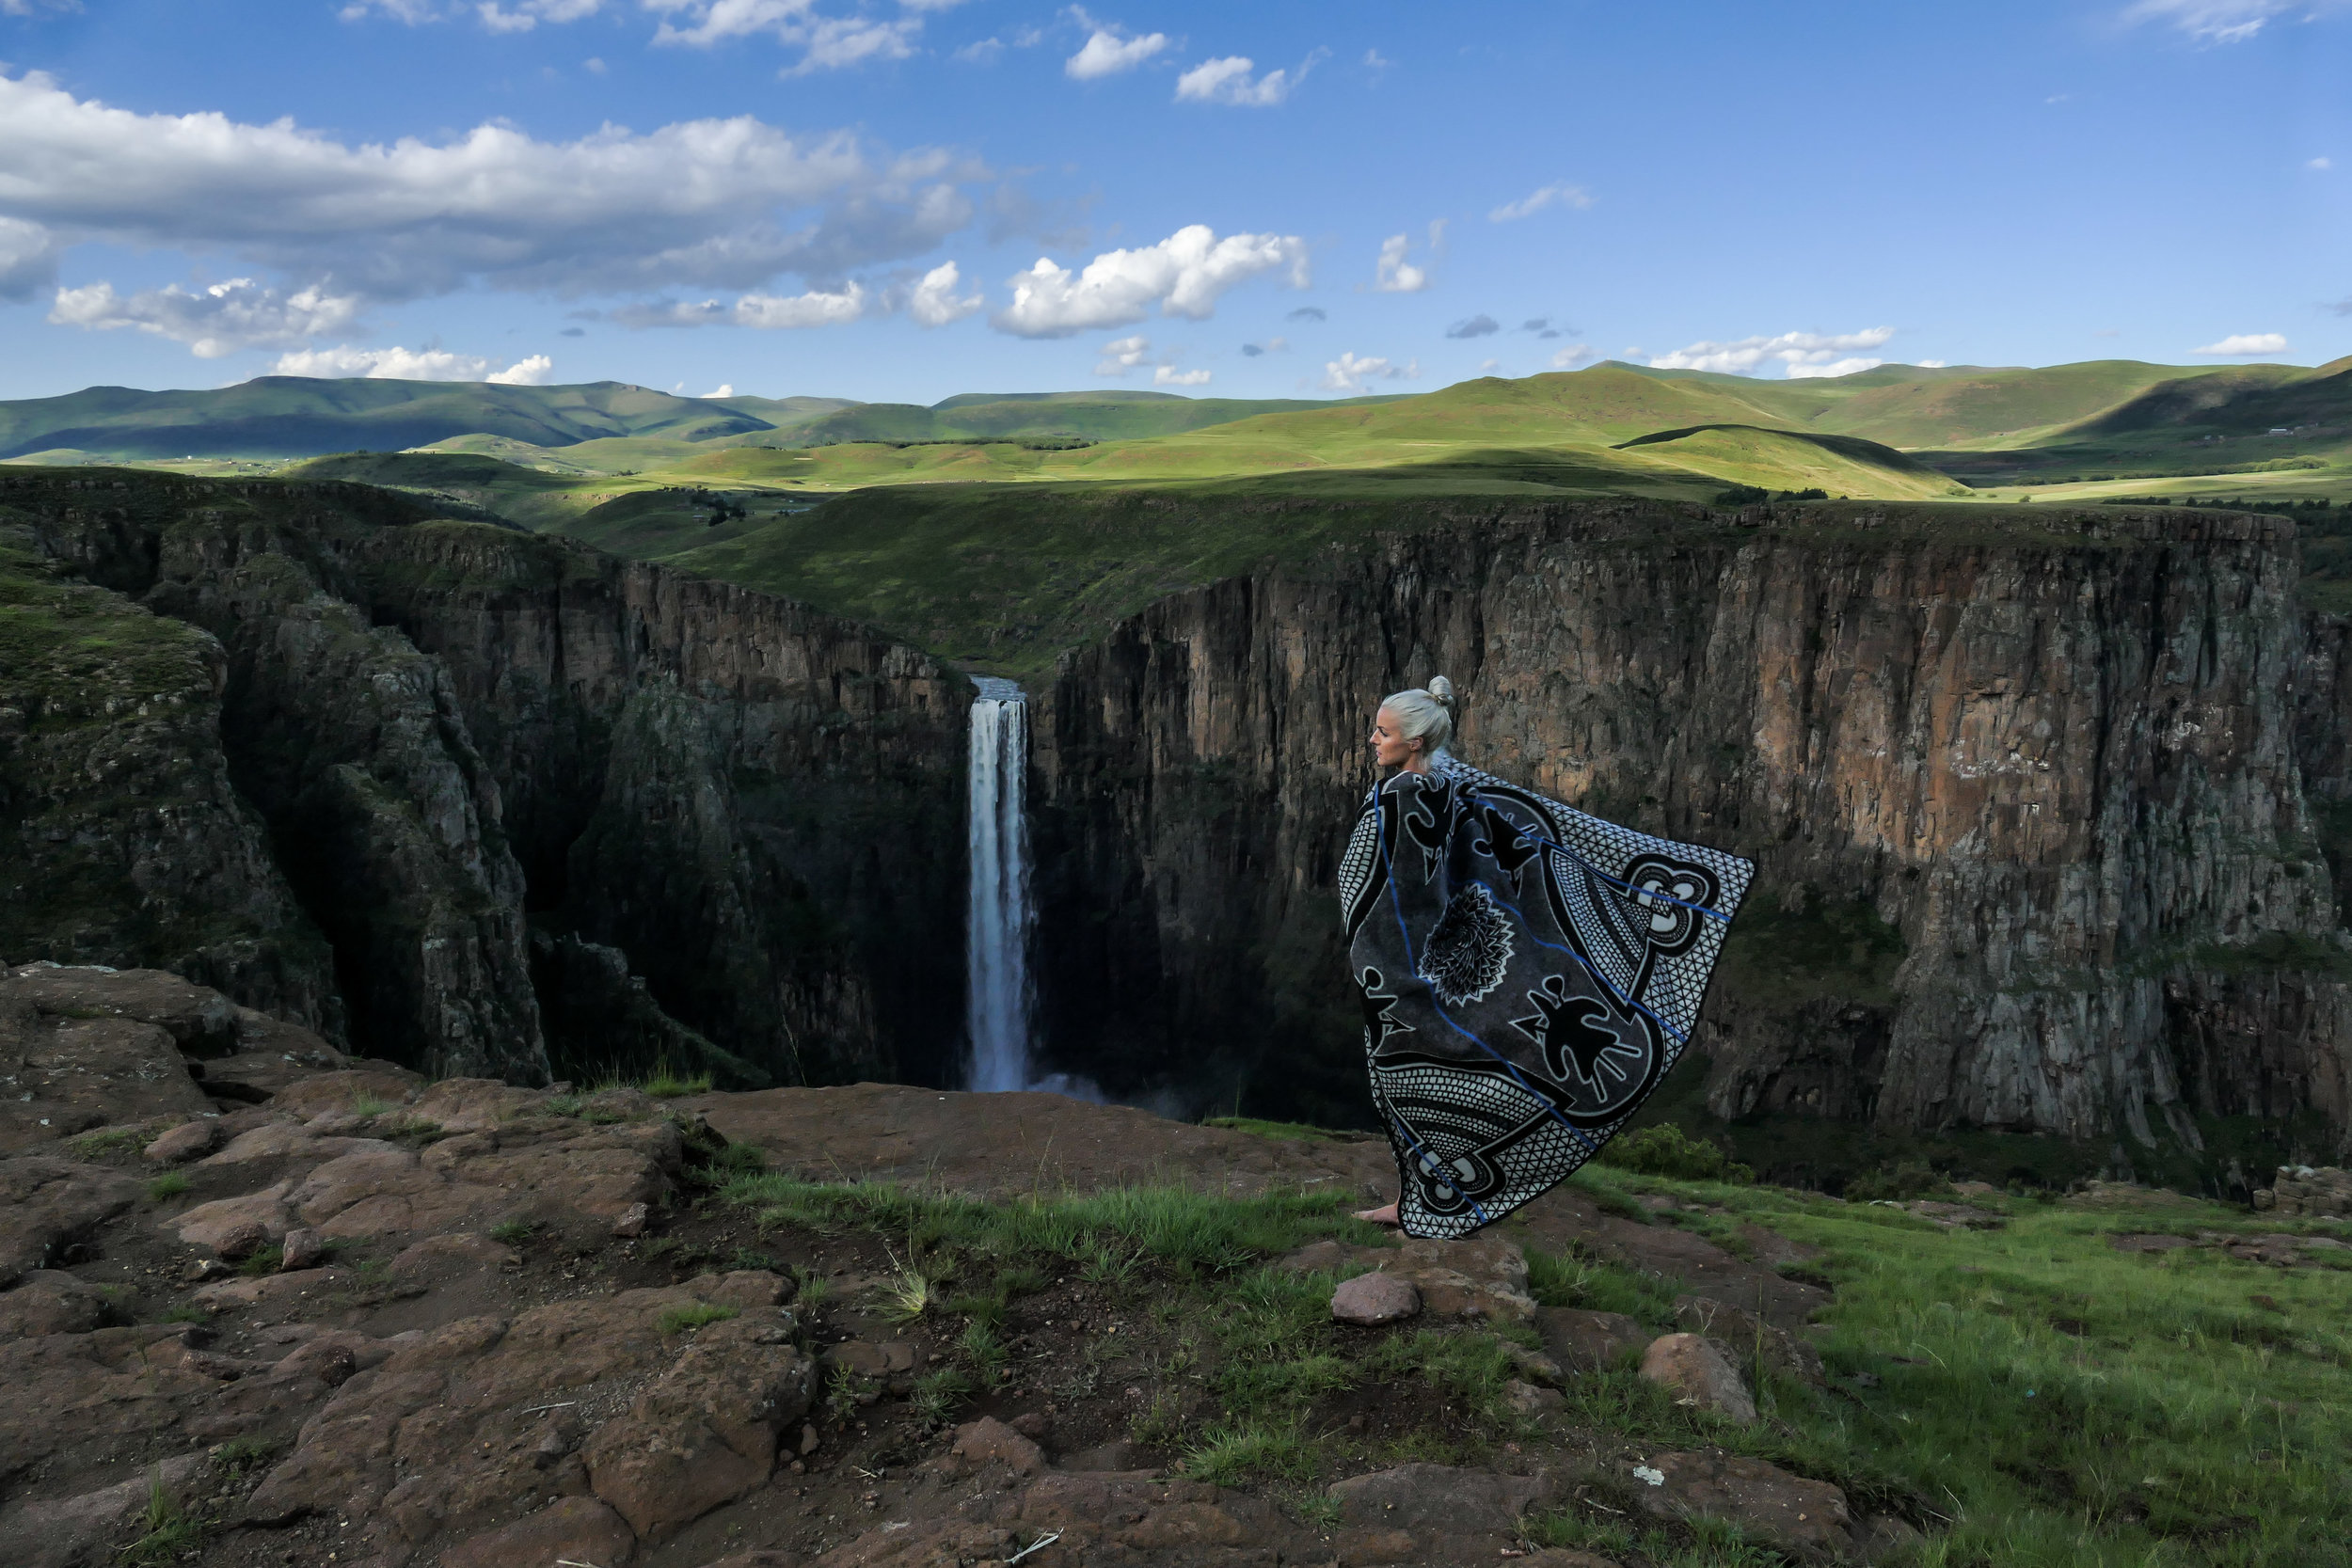 Adrienne McDermott at Maletsunyane Falls in Semonkong, Lesotho wearing a traditional Kharetsa (Spiral Aloe) pattern Basotho Blanket. Image by Andrew McDermott @heyheyAndrew